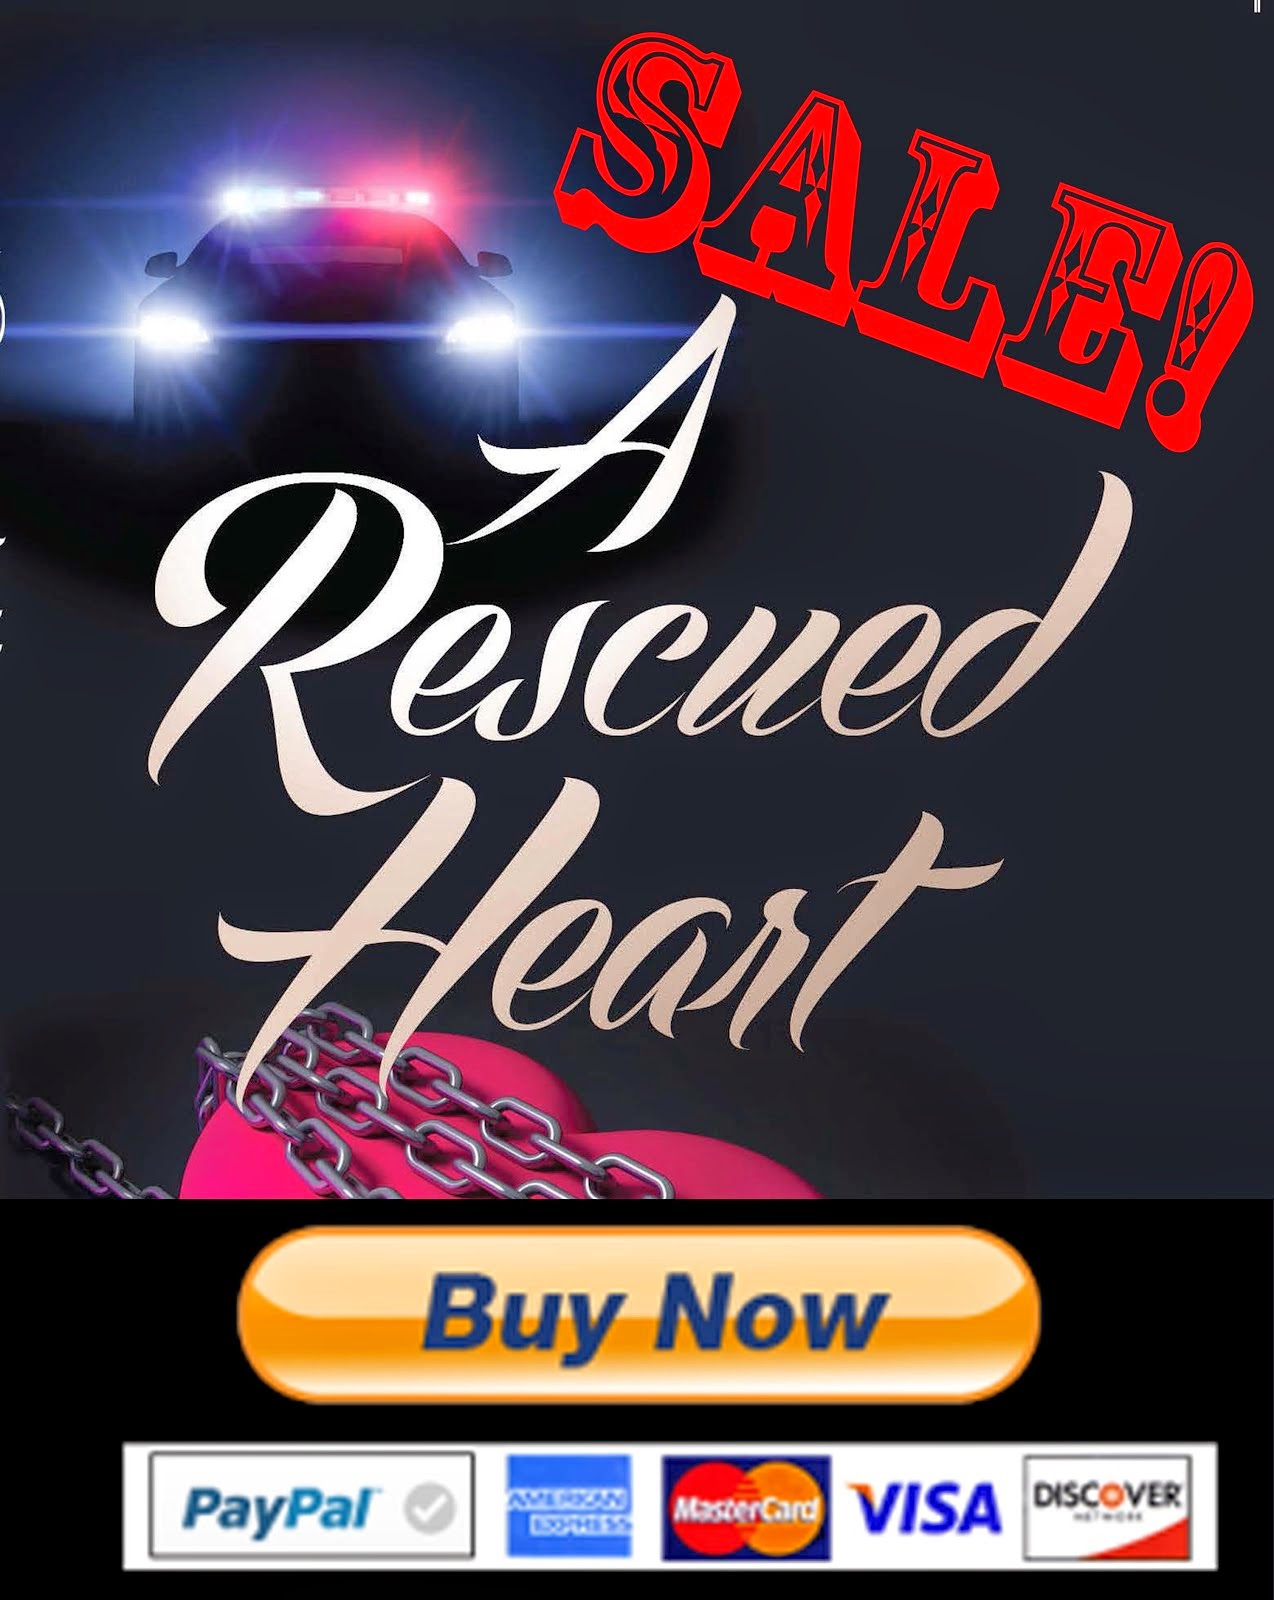 SALE! A Rescued Heart